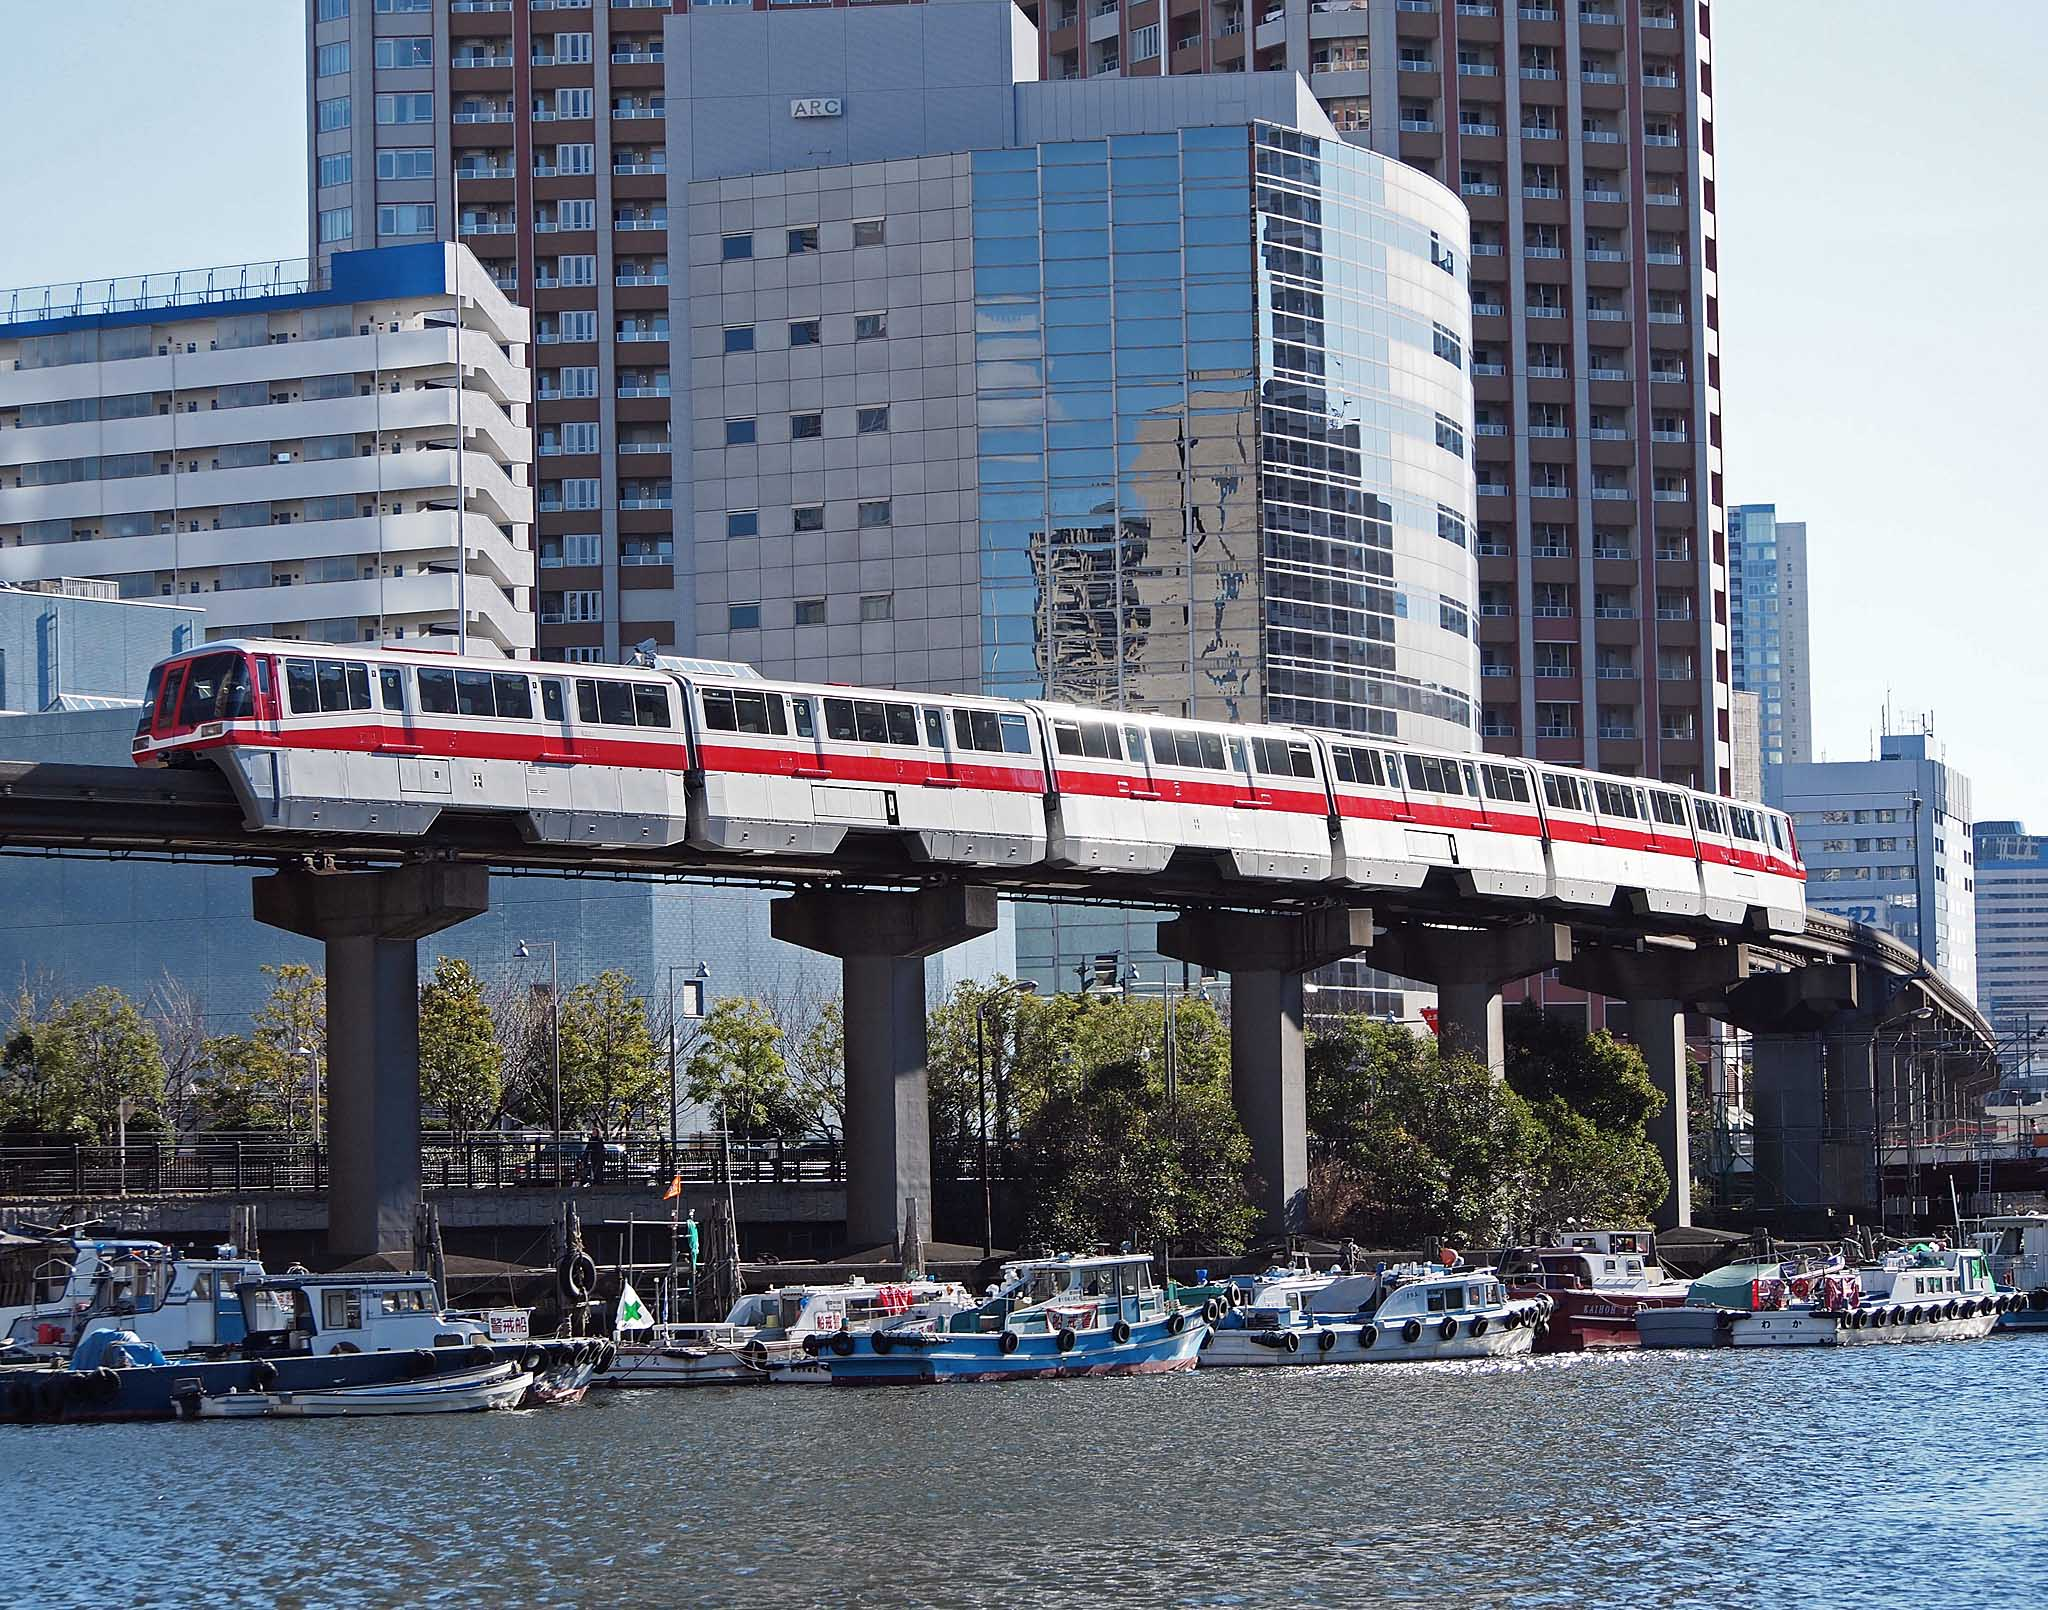 https://upload.wikimedia.org/wikipedia/commons/5/5d/Tokyo_Monorail_1049F_History_Train_500_series_revival_color.jpg